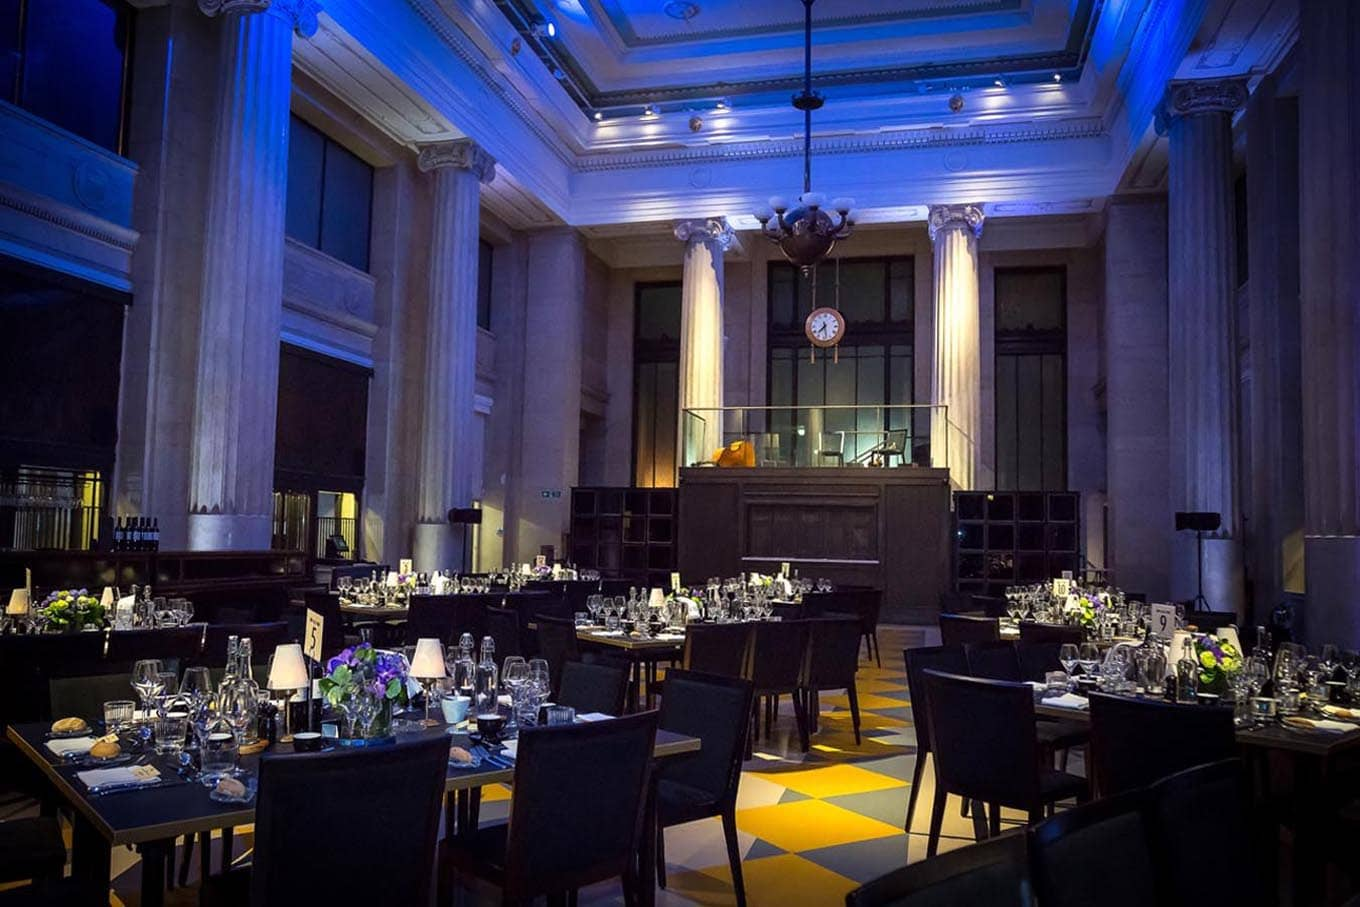 The Best You Gala Awards Dinner at The Banking Hall